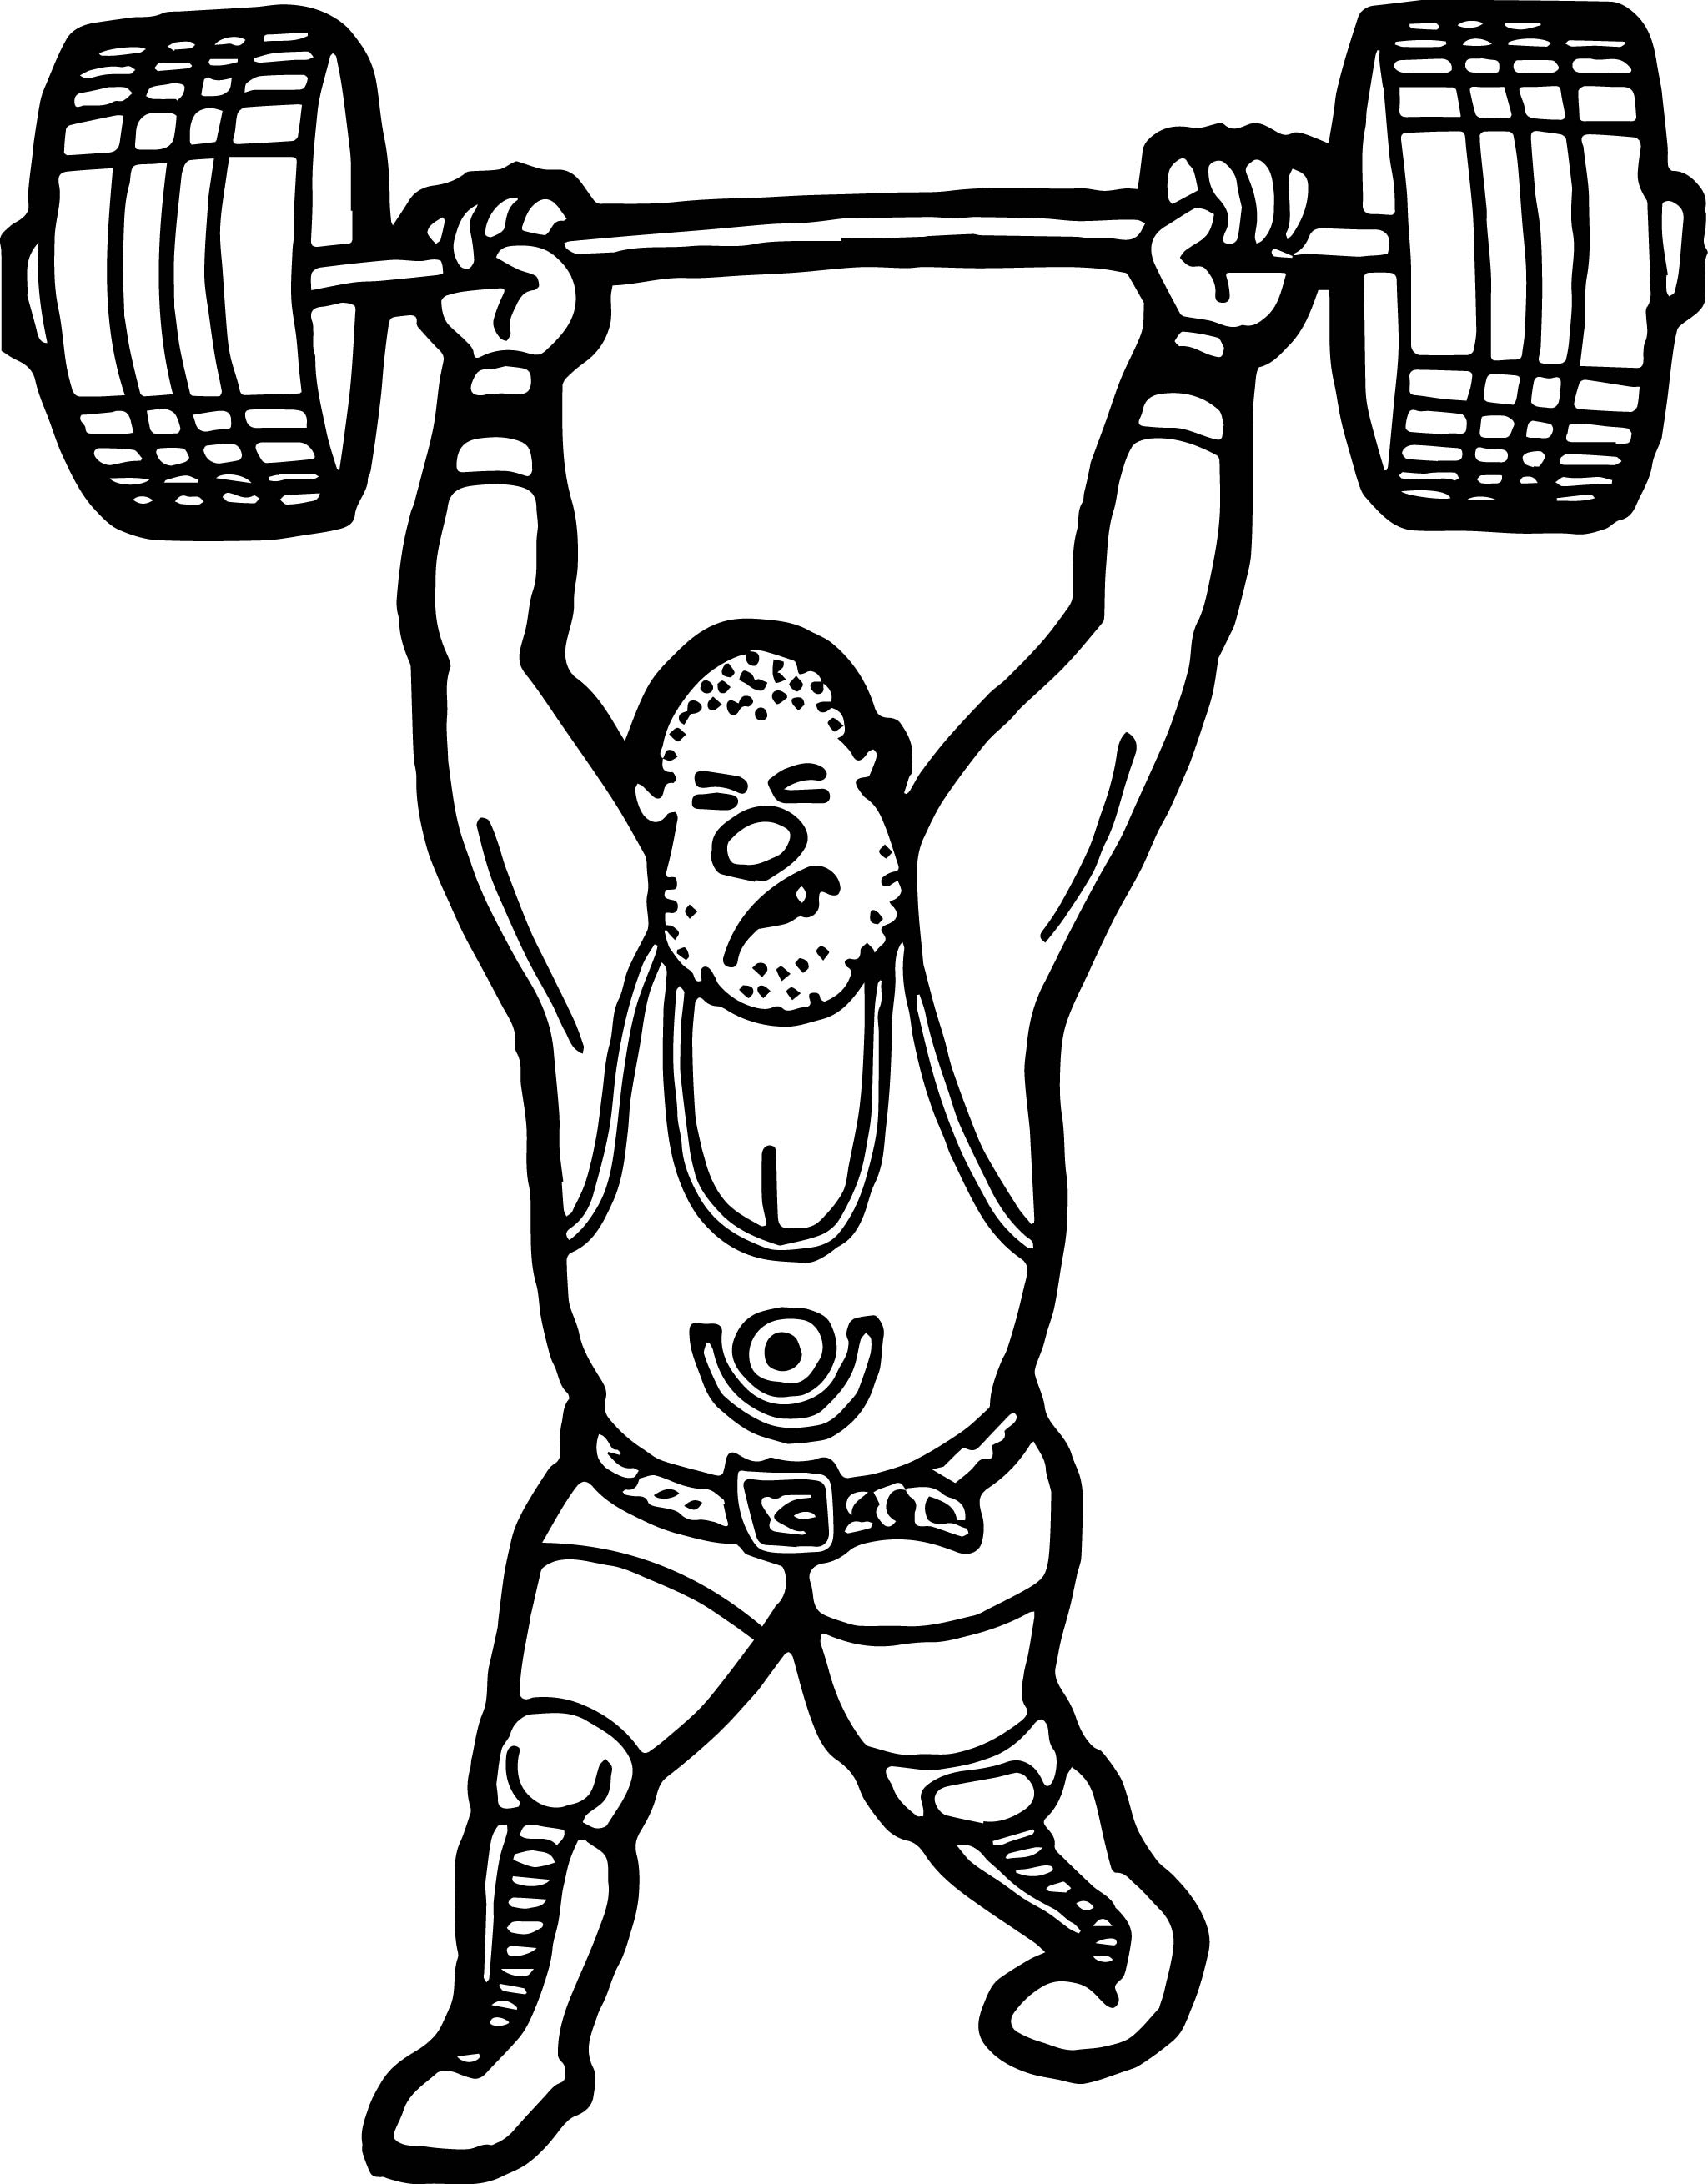 coloring pages weightlifter - photo#8